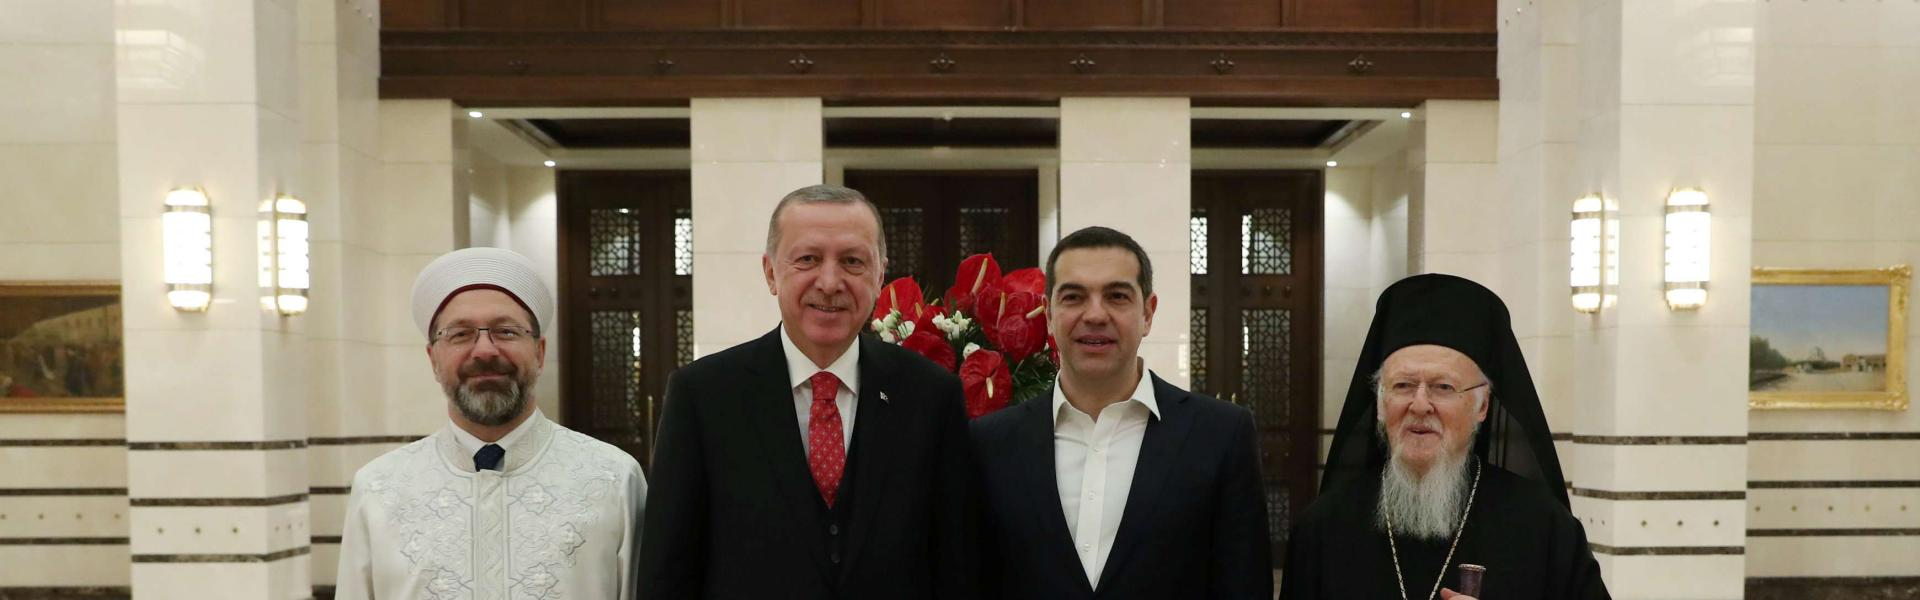 Turkish President Tayyip Erdogan and Greek Prime Minister Alexis Tsipras pose with Ecumenical Patriarch Bartholomew I and Ali Erbas, head of Turkey's Religious Affairs Directorate, after a dinner at the Presidential Palace in Ankara, Turkey, February 5, 2019. Picture taken February 5, 2019. Kayhan Ozer/Presidential Press Office/Handout via REUTERS ATTENTION EDITORS - THIS PICTURE WAS PROVIDED BY A THIRD PARTY. NO RESALES. NO ARCHIVEarabicphoto 20190206034754 reureu horzhorz